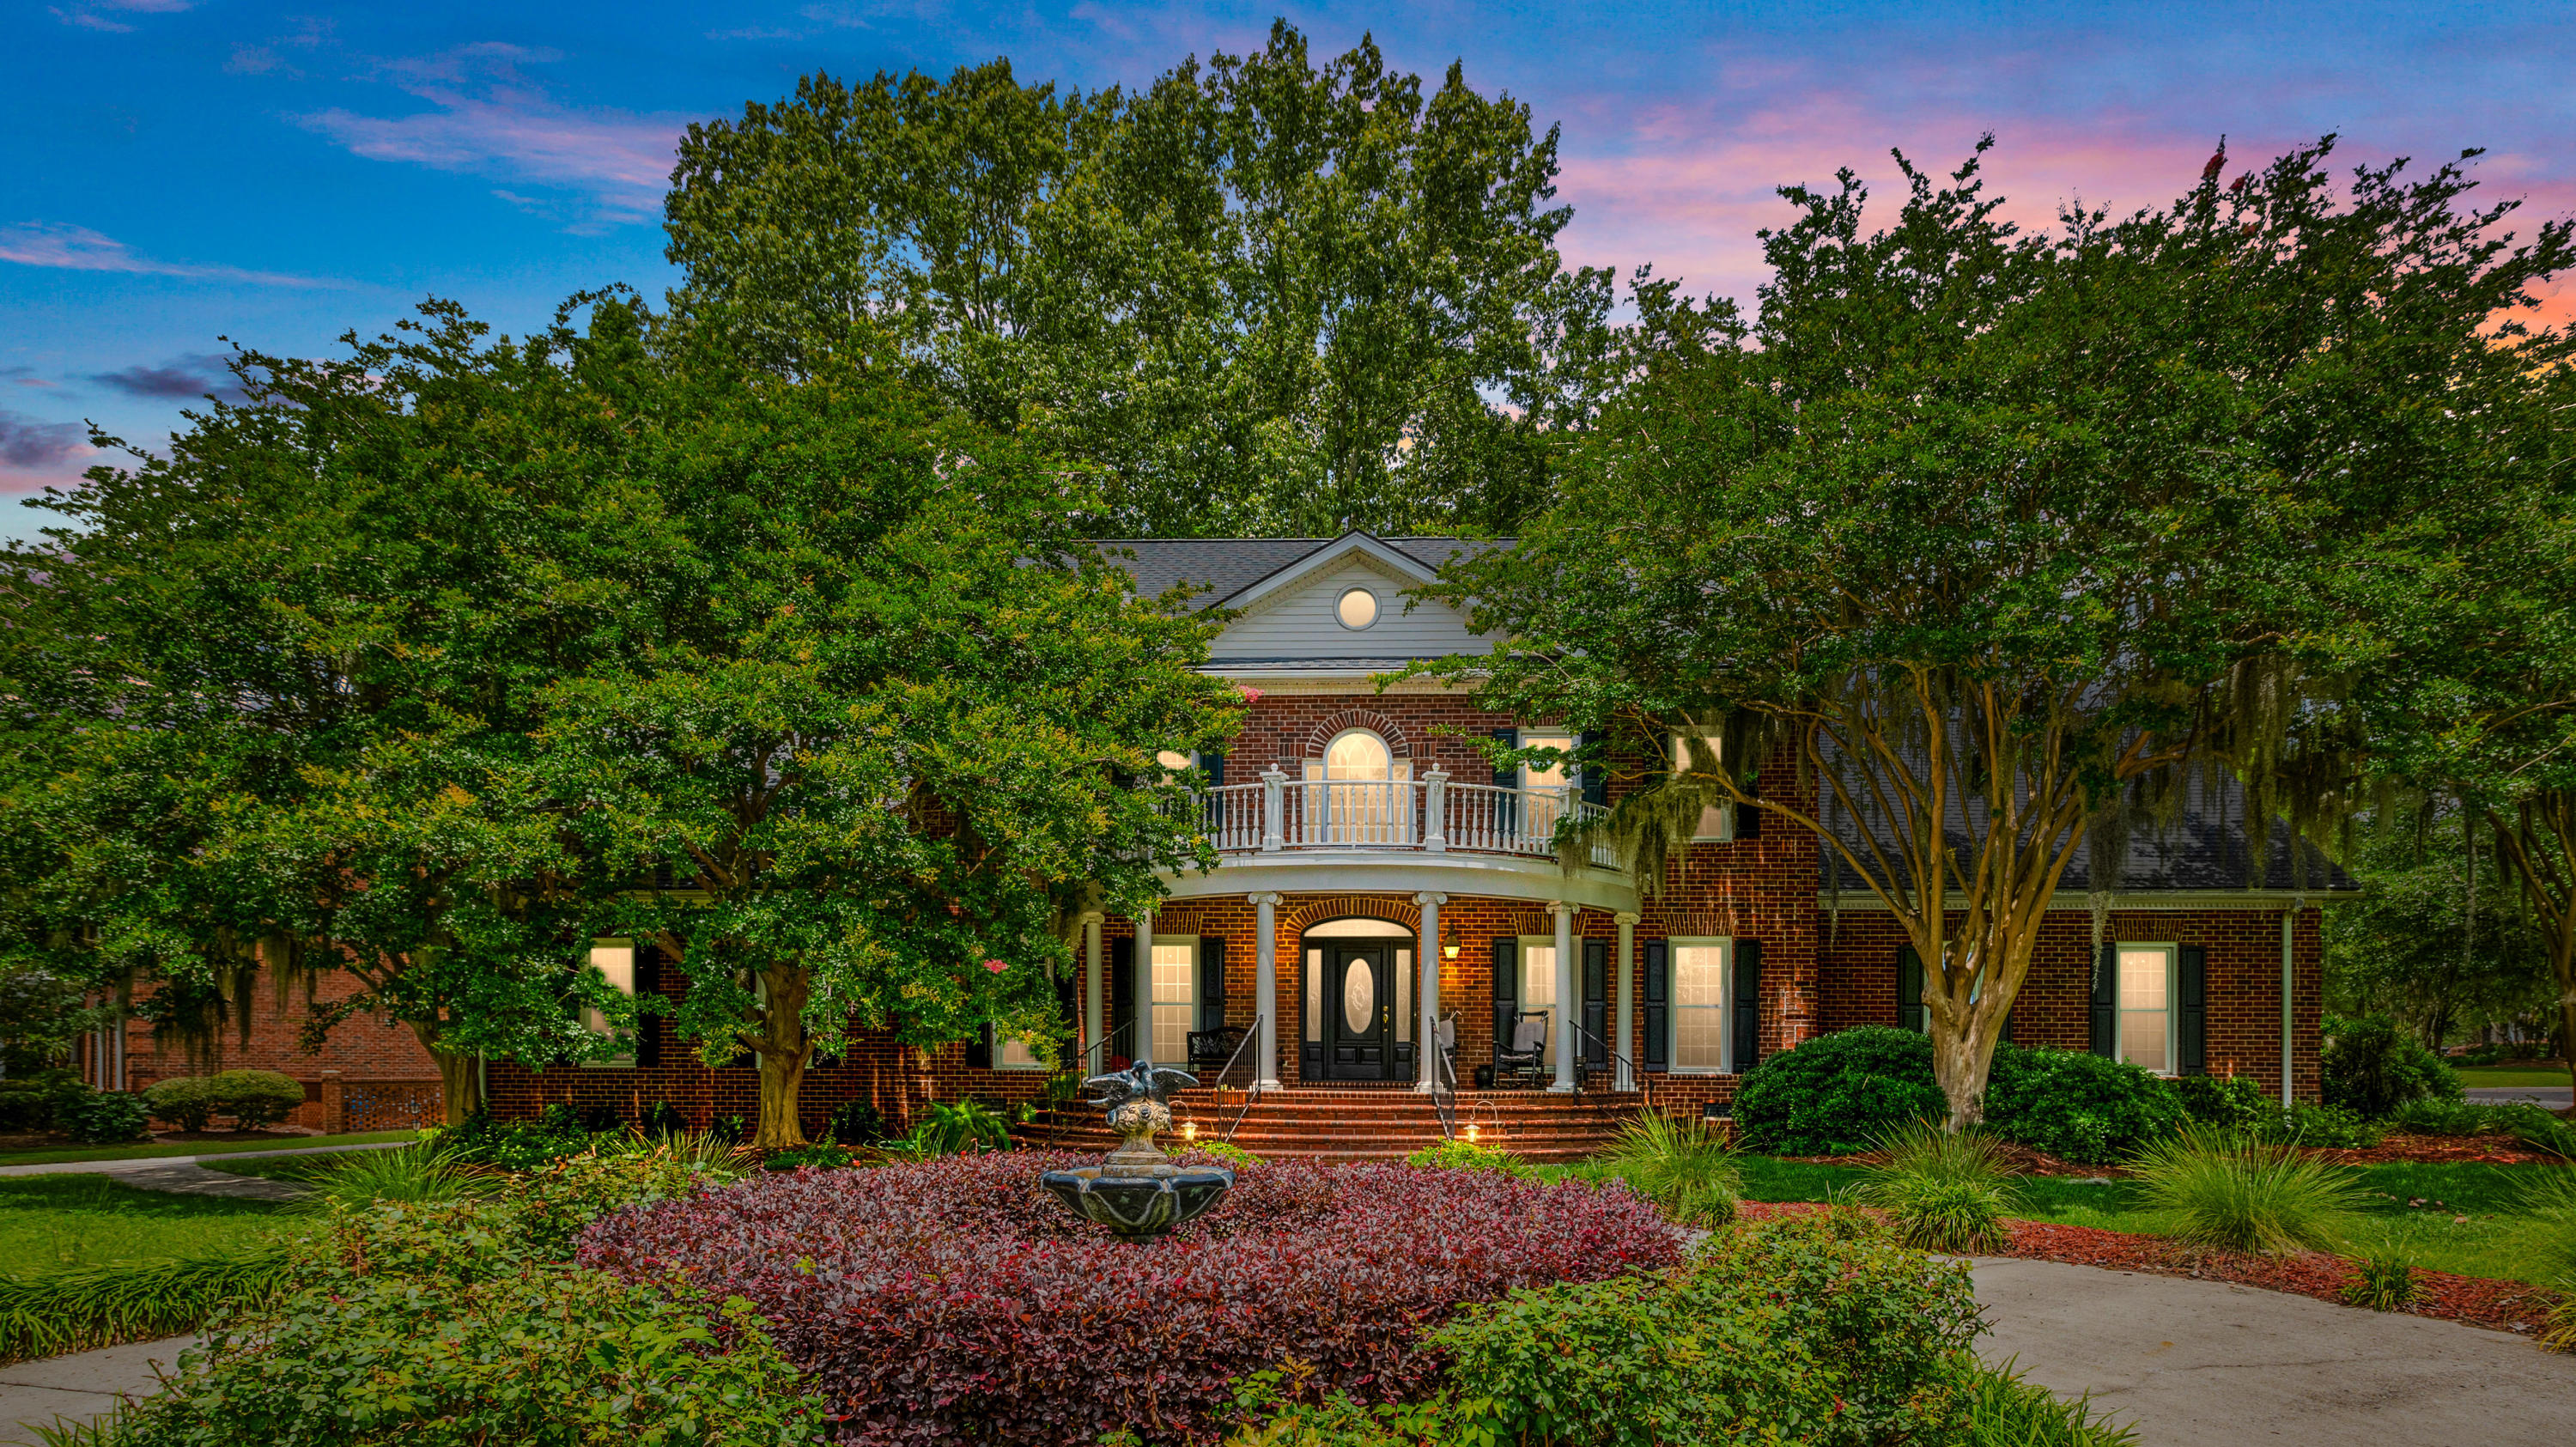 Coosaw Creek Country Club Homes For Sale - 8600 Wild Bird, North Charleston, SC - 26